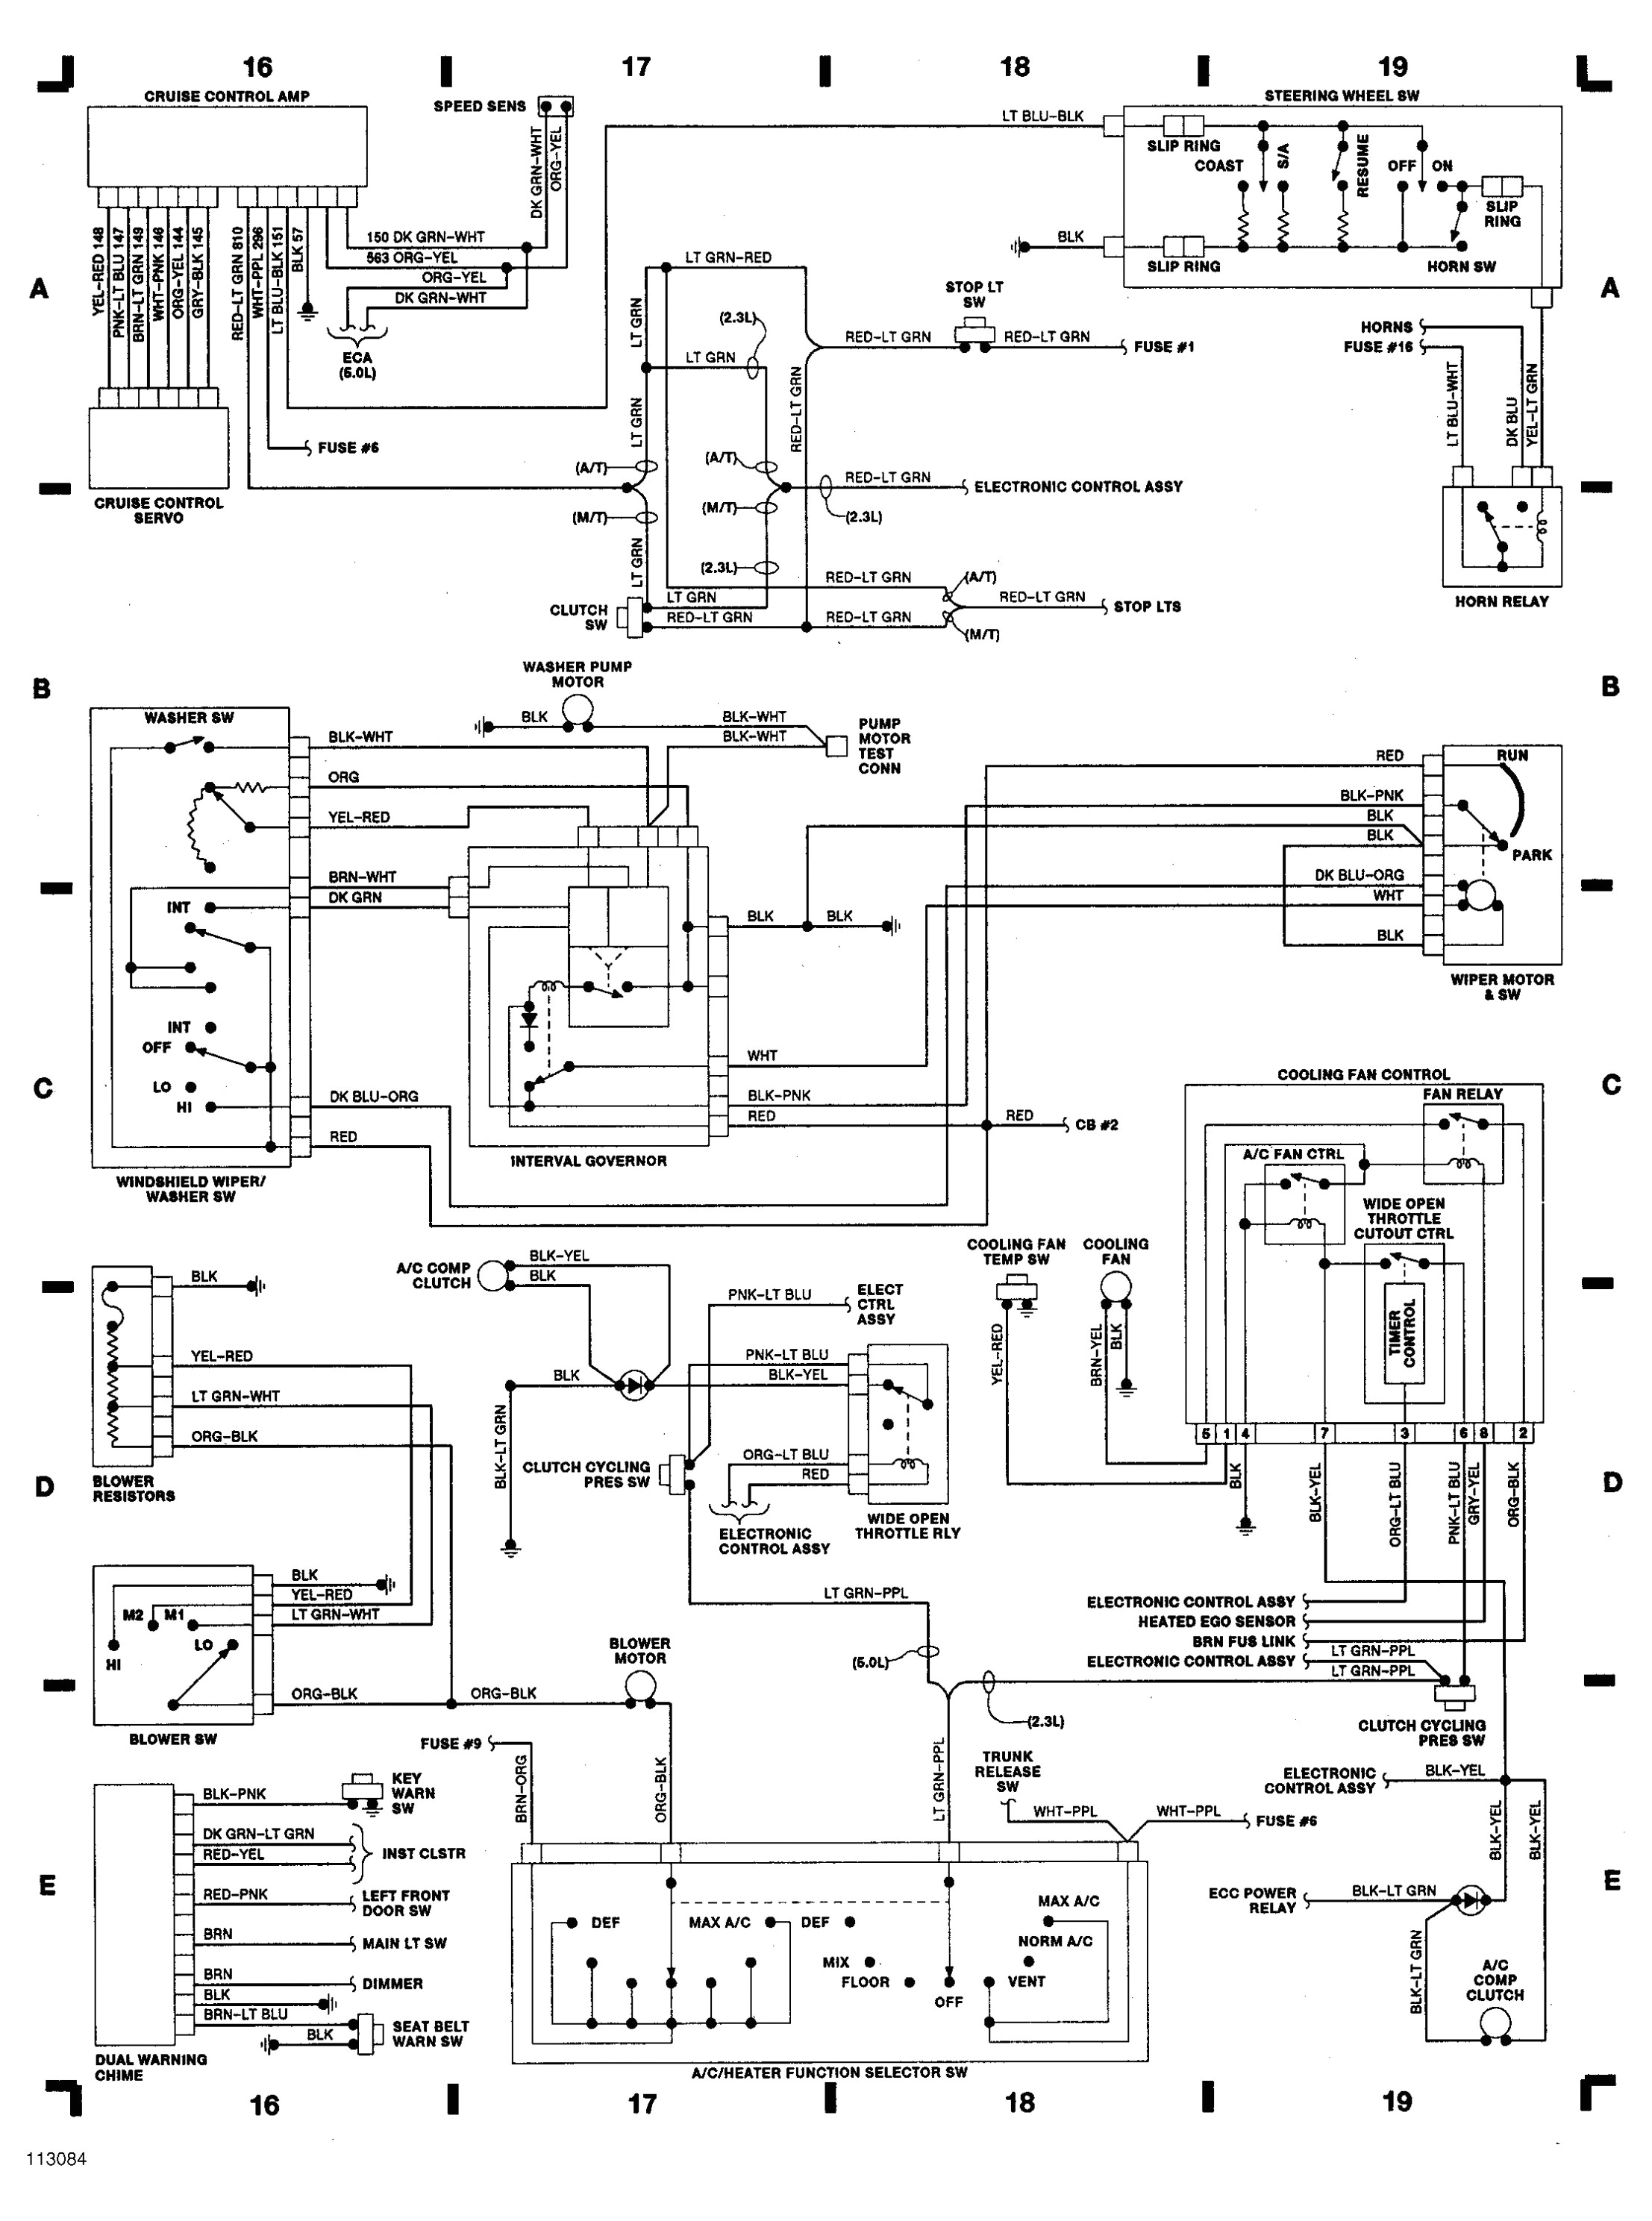 1965 Mustang Wiring Harness Diagram